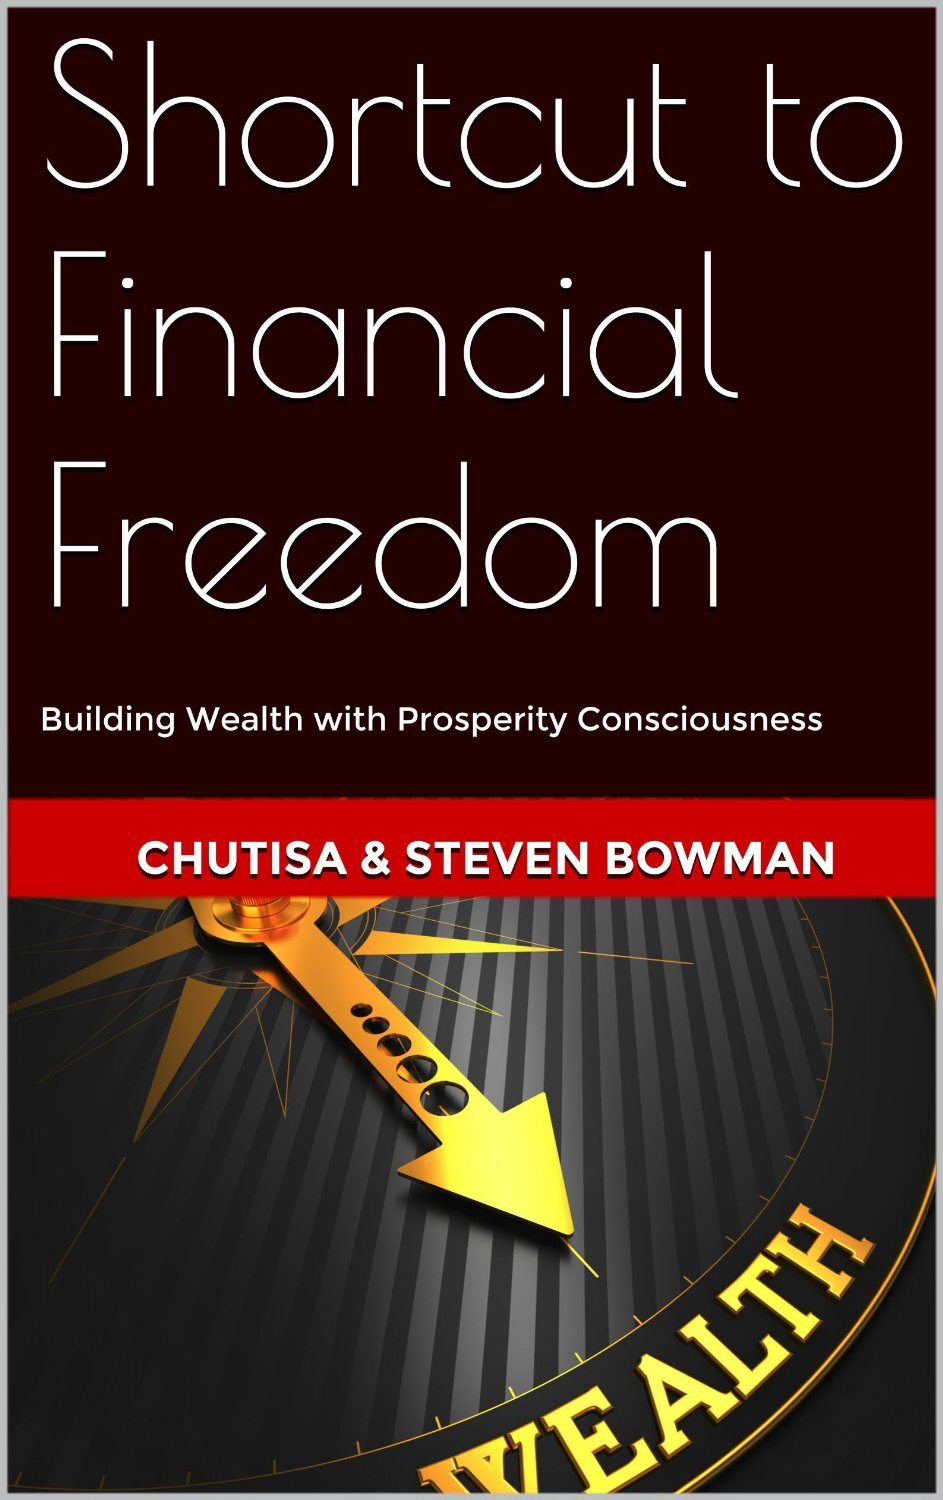 Shortcut to financial freedom